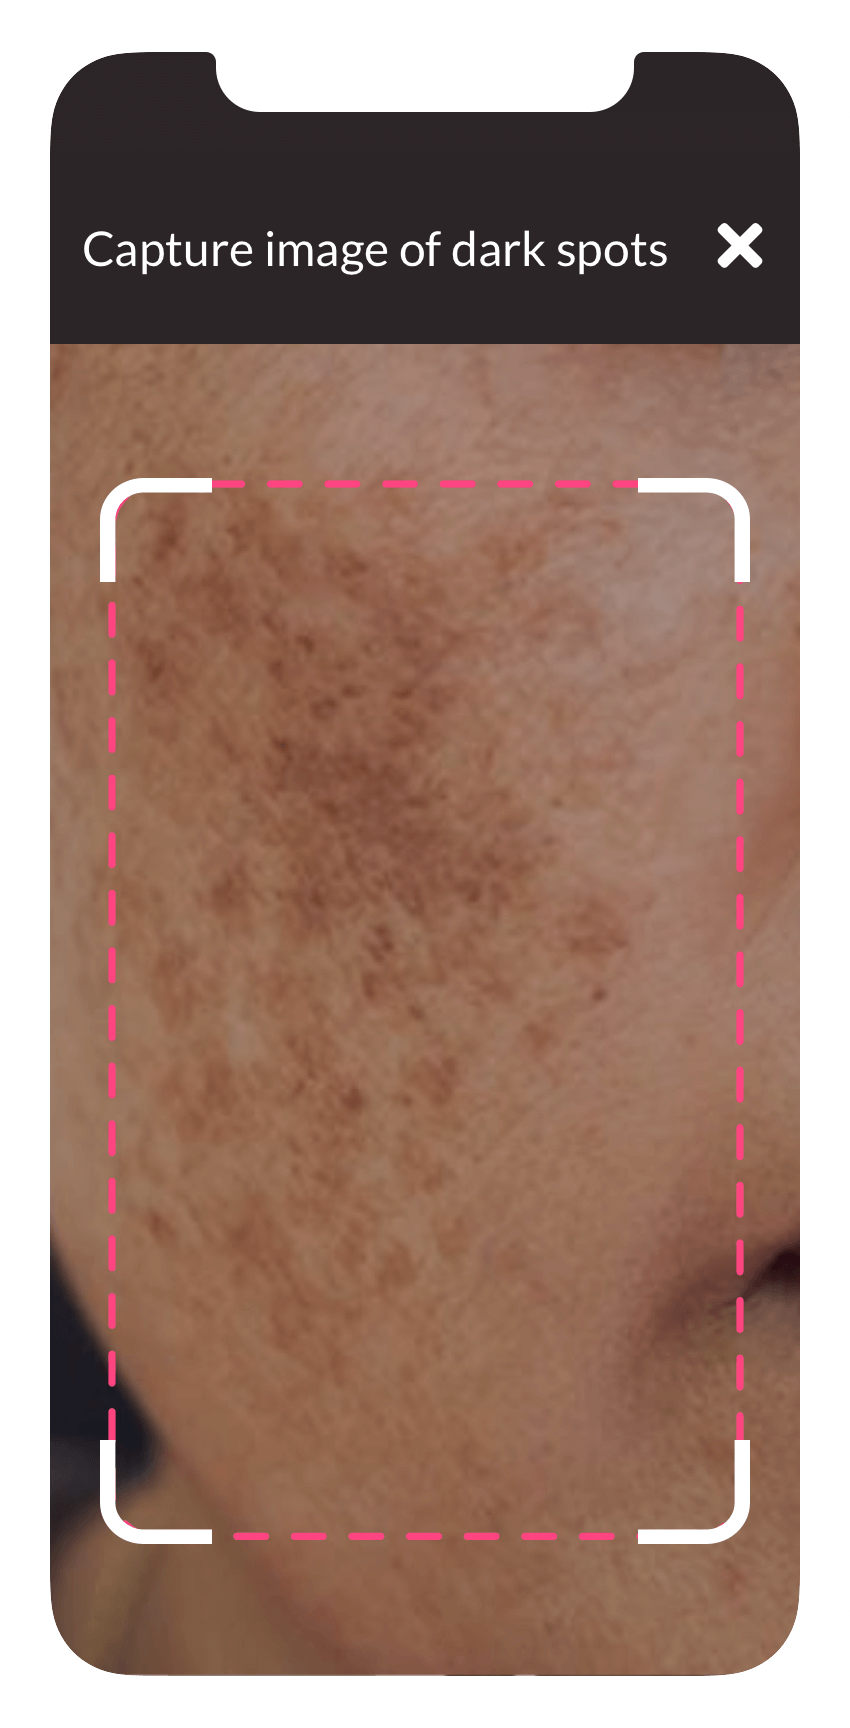 Capturing an image of dark spots on face through the ObvioHealth app.